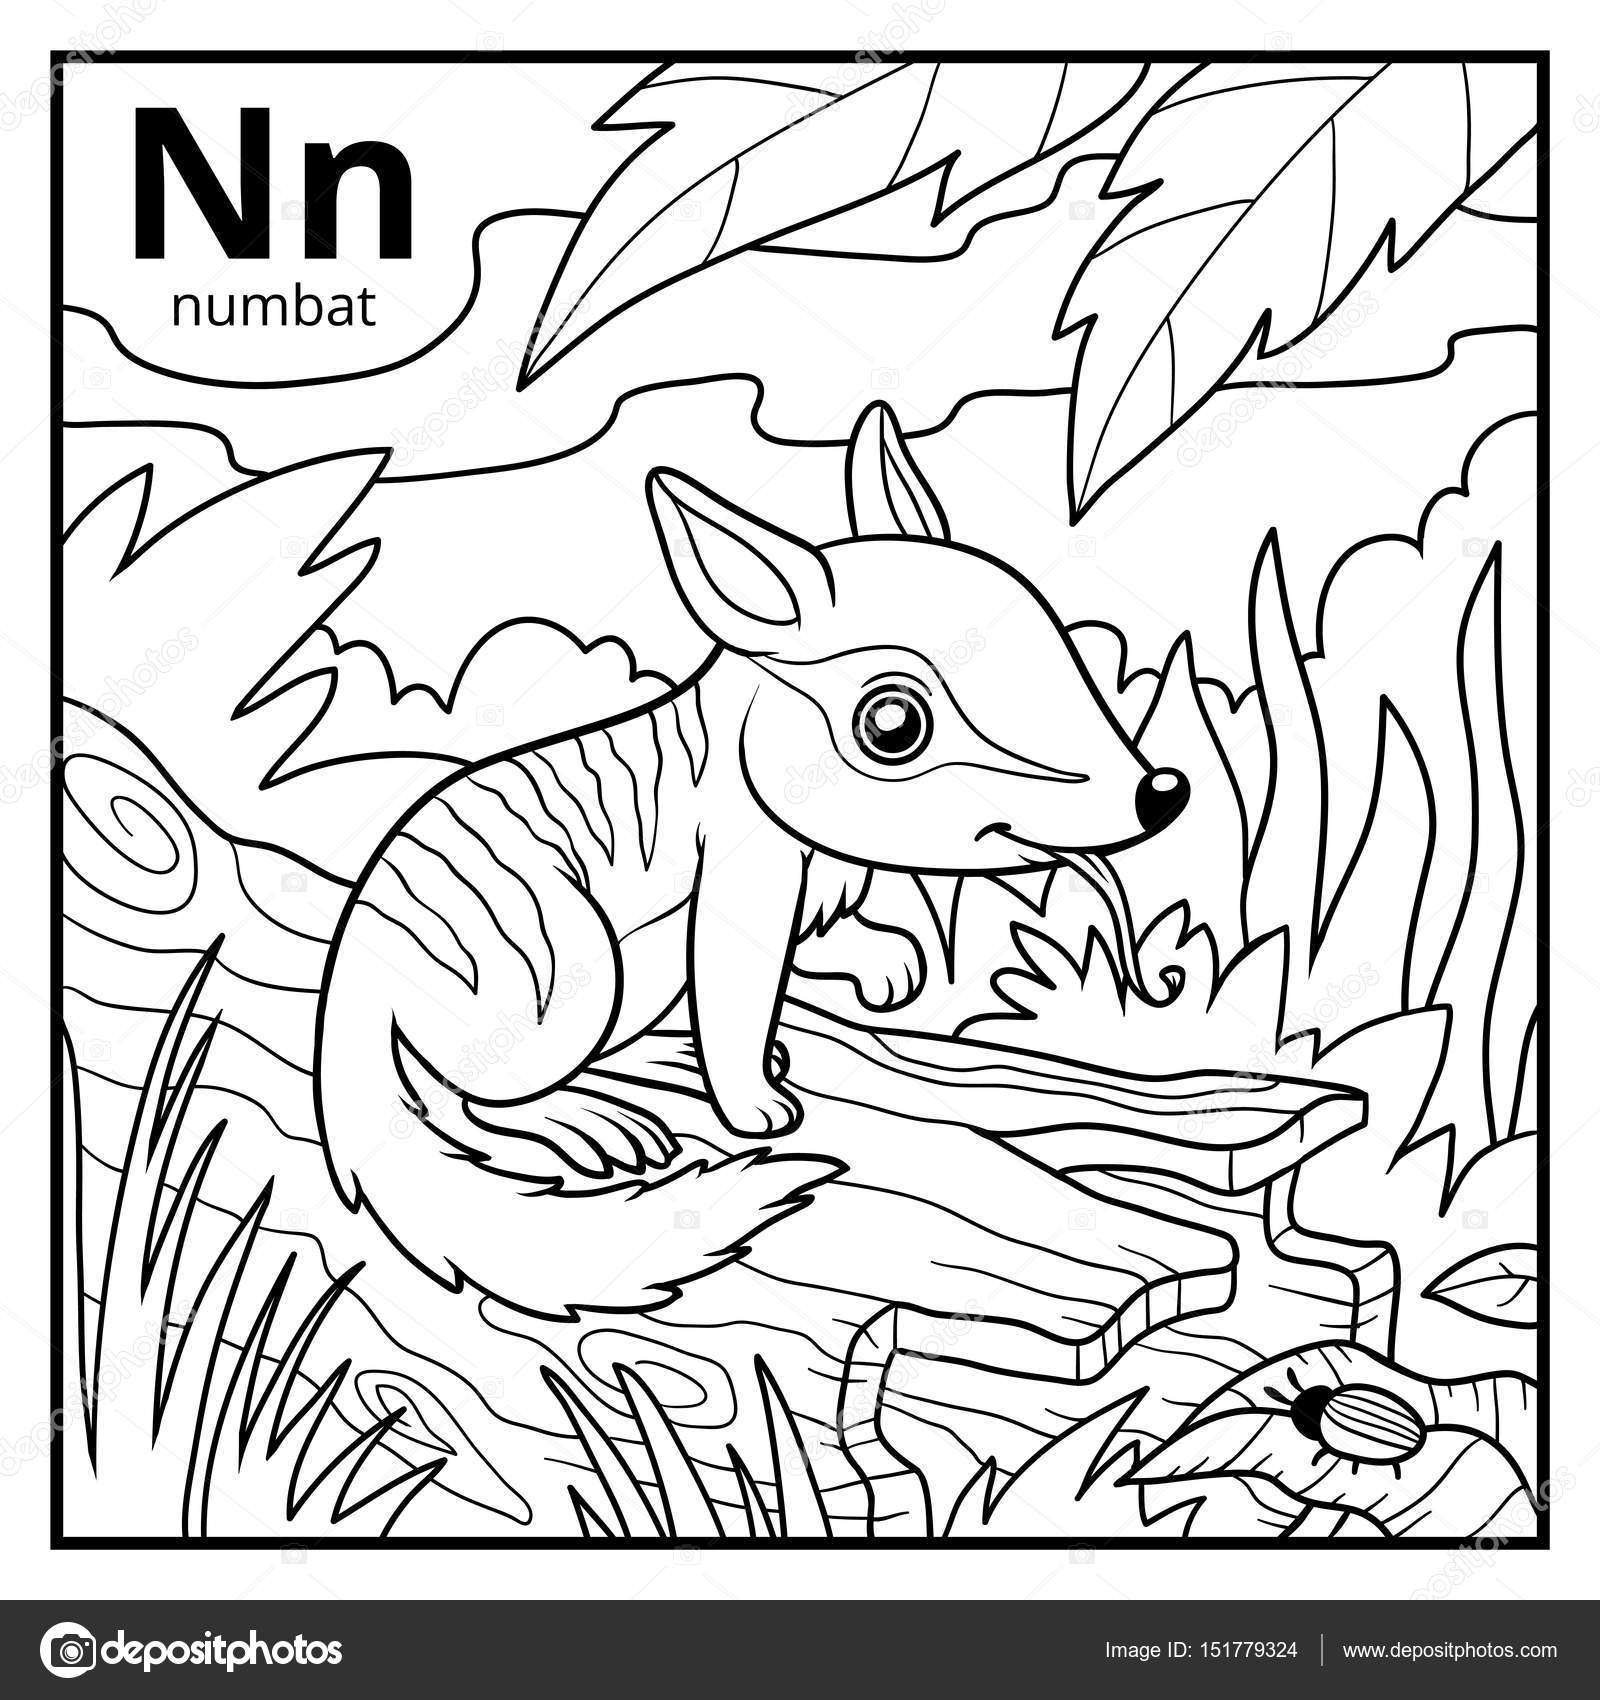 Coloring book colorless alphabet Letter N numbat Stock Vector